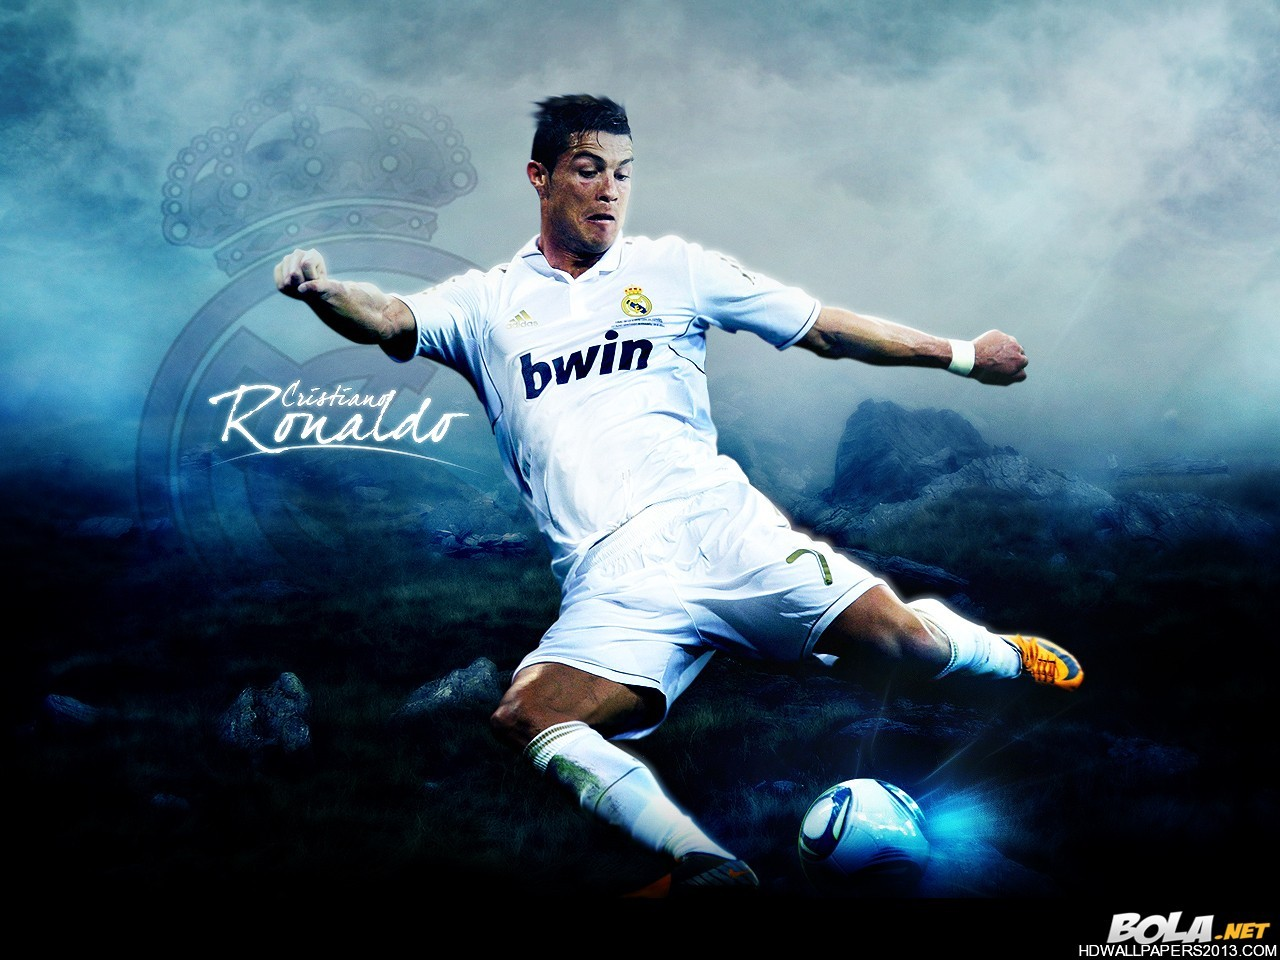 Cristiano Ronaldo Wallpaper Hd Hd Wallpapers 2012 Cristiano Ronaldo